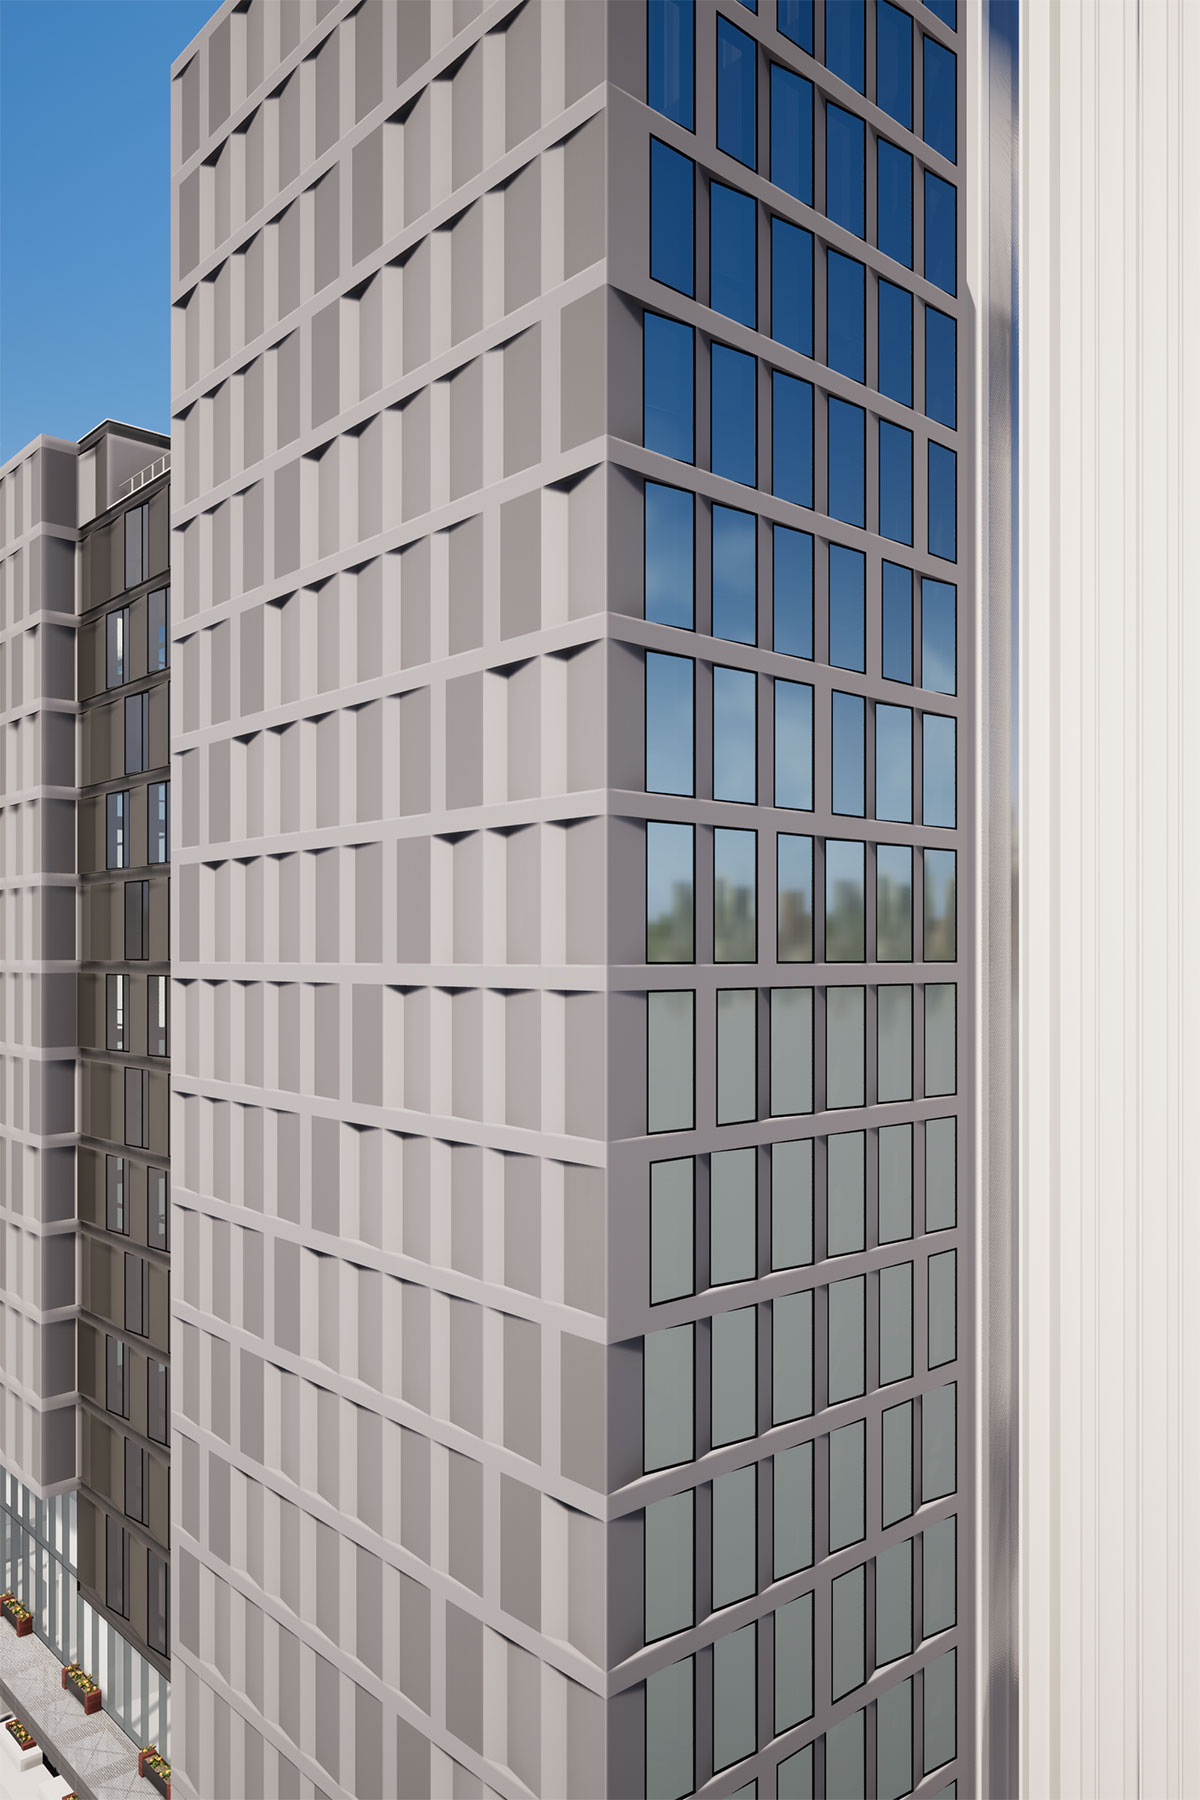 Facade pattern of the San Francisco modular project located at 570 Market Street on the Financial District of San Francisco, California designed by the architecture studio Danny Forster & Architecture